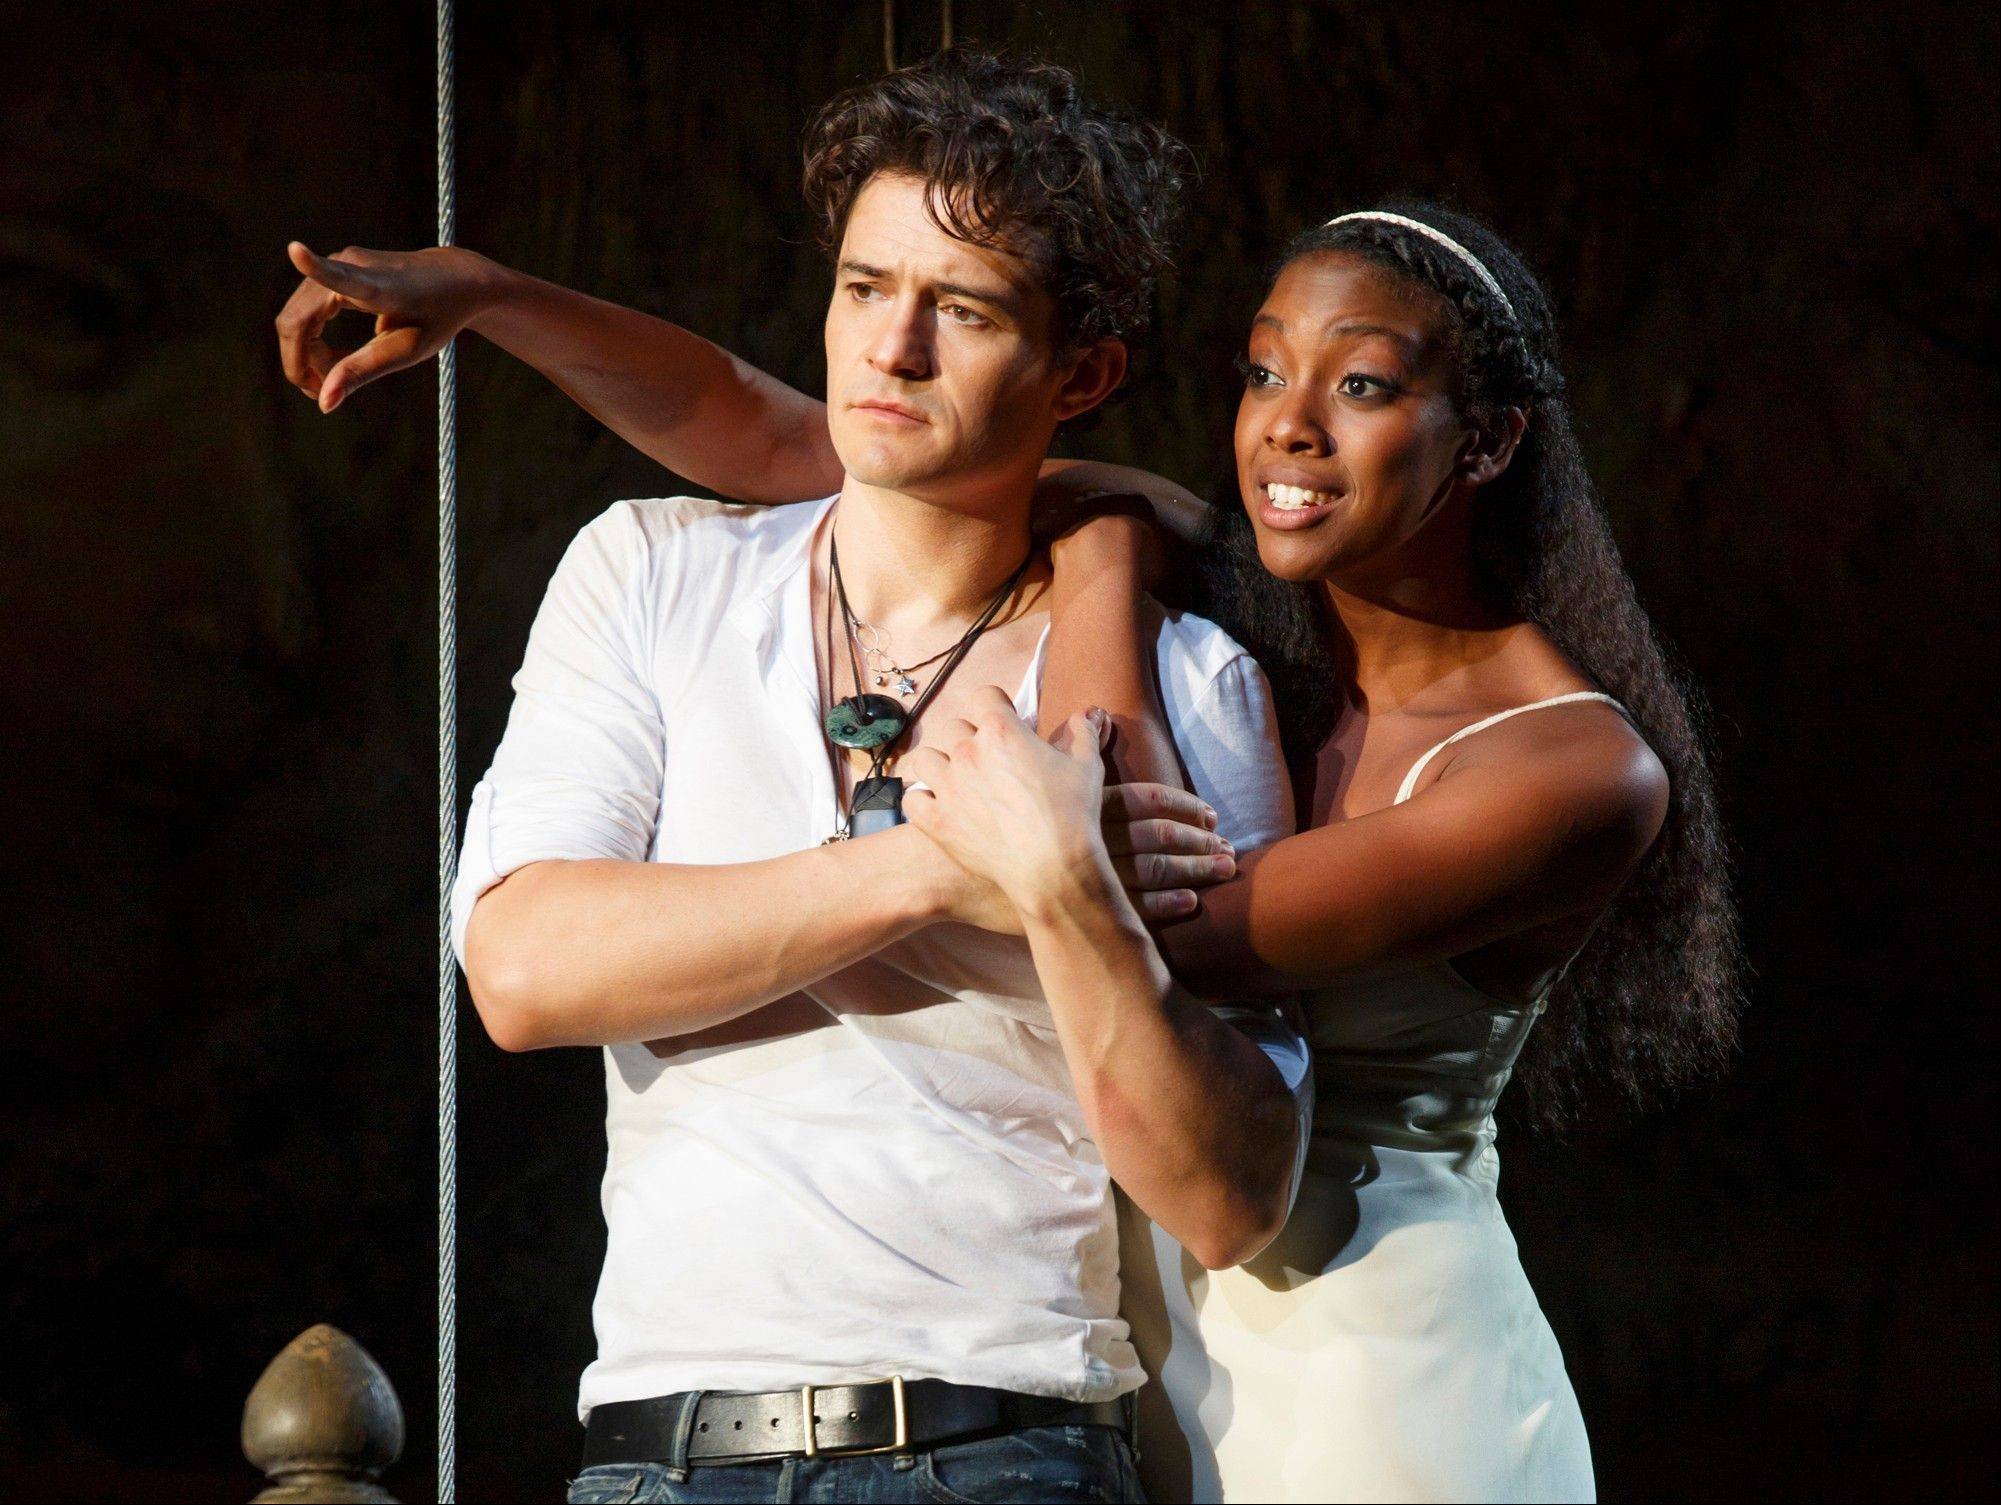 Orlando Bloom and Condola Rashad perform �Romeo and Juliet� in New York. Content provider Screenvision and the new company BroadwayHD have teamed up to broadcast the recent production to movie theaters across the country in February.